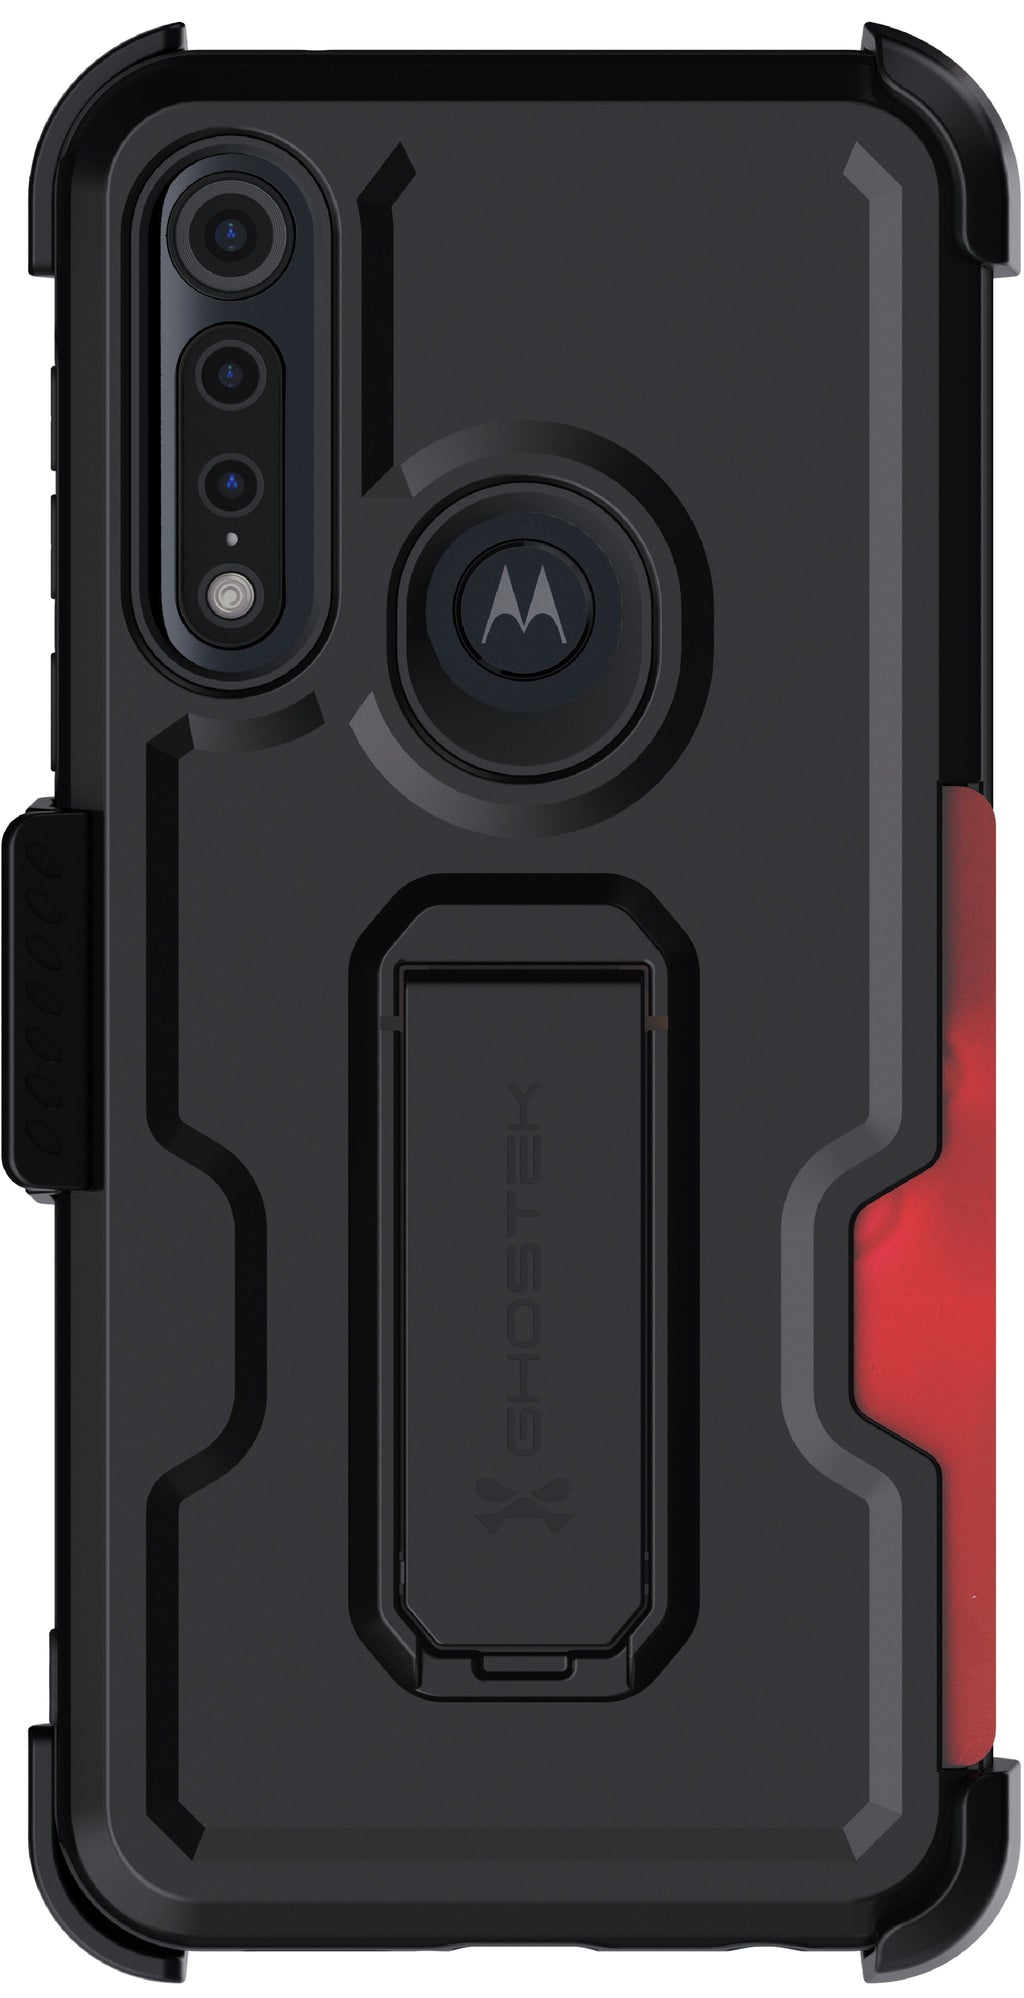 Moto G Power Case | Belt Clip Holster & Built-In Kickstand IRON ARMOR 3 Case | UVIYO CASES , Moto G Power Cases , GHOSTEK - UVIYO